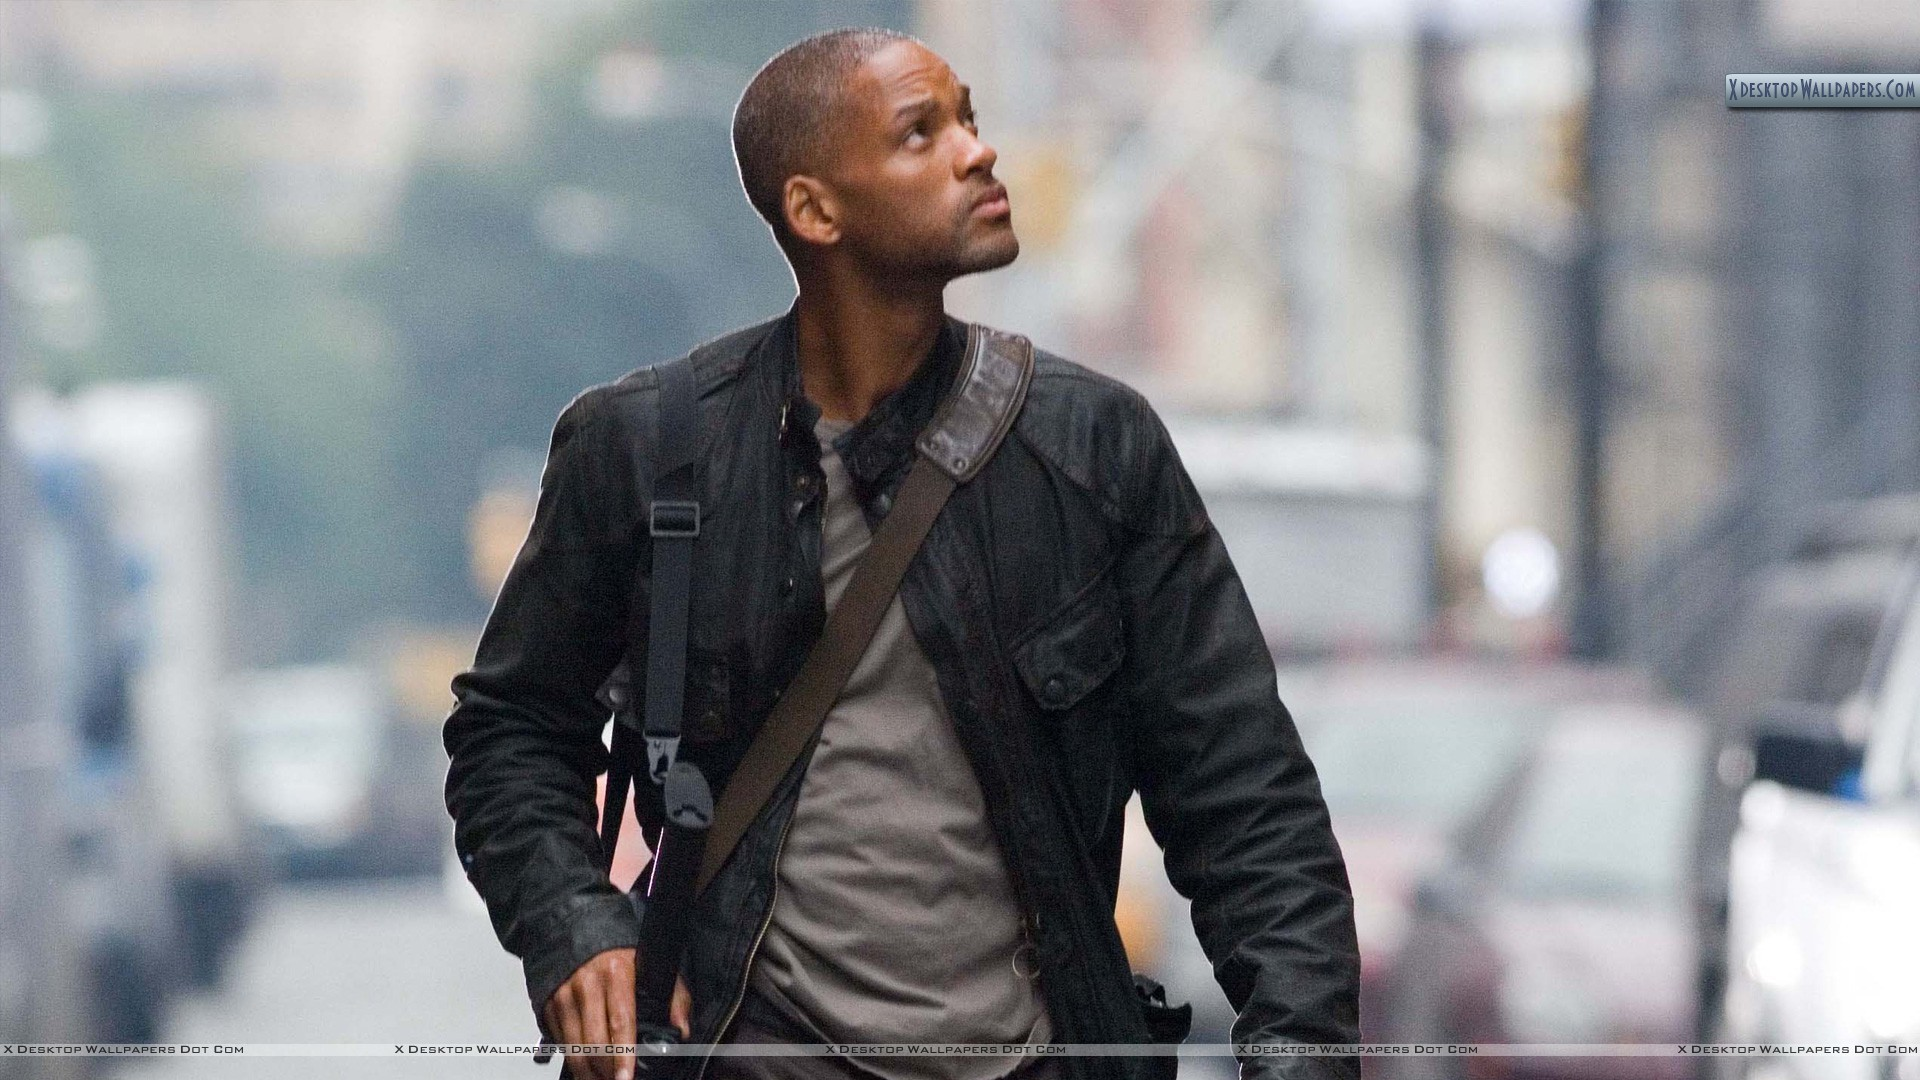 1920x1080 Pics: Pics of Will Smith from I Am Legend Set - CanMag ...